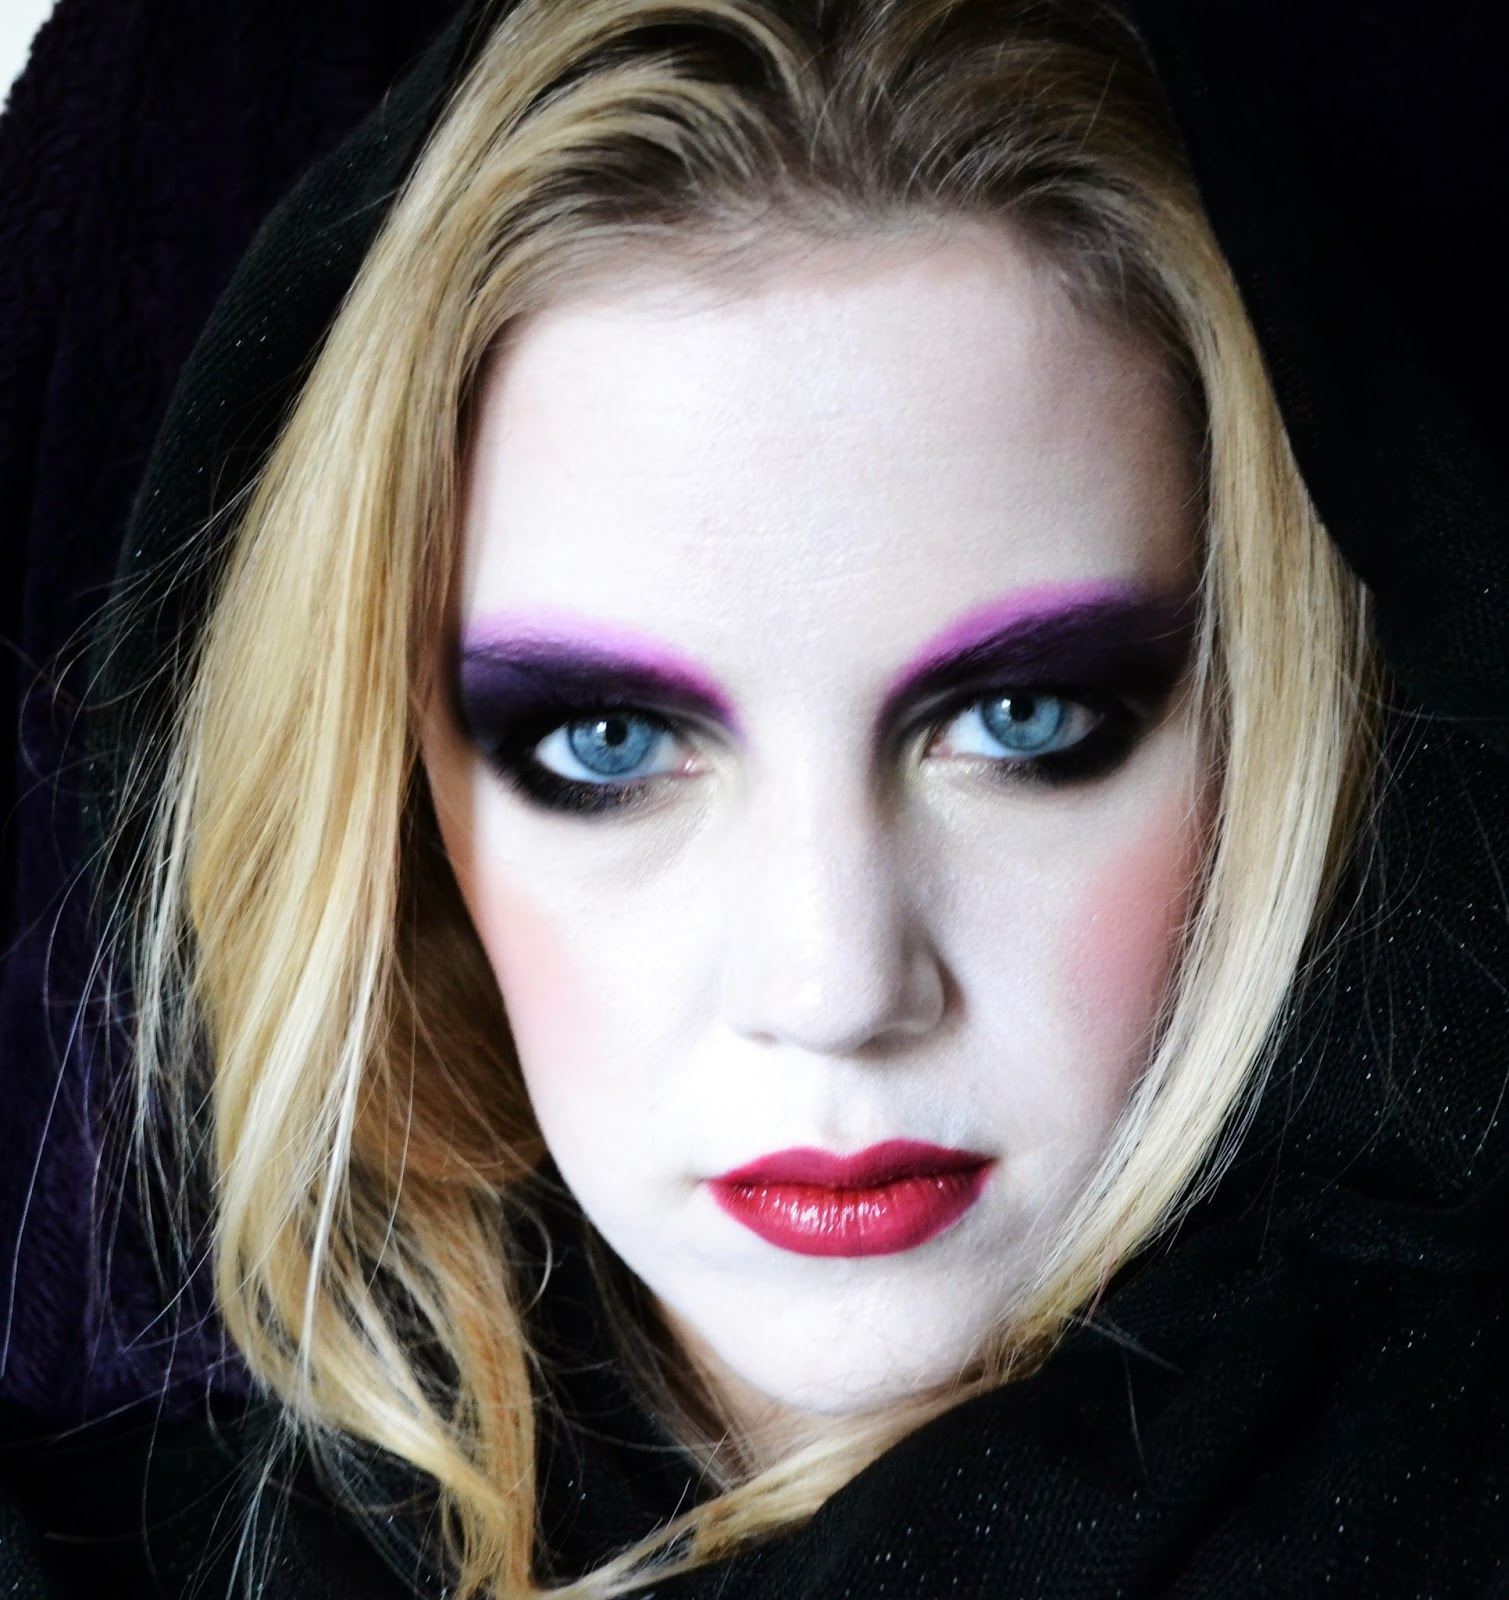 ... whatever you want it to be here is my take on gothic inspired make up